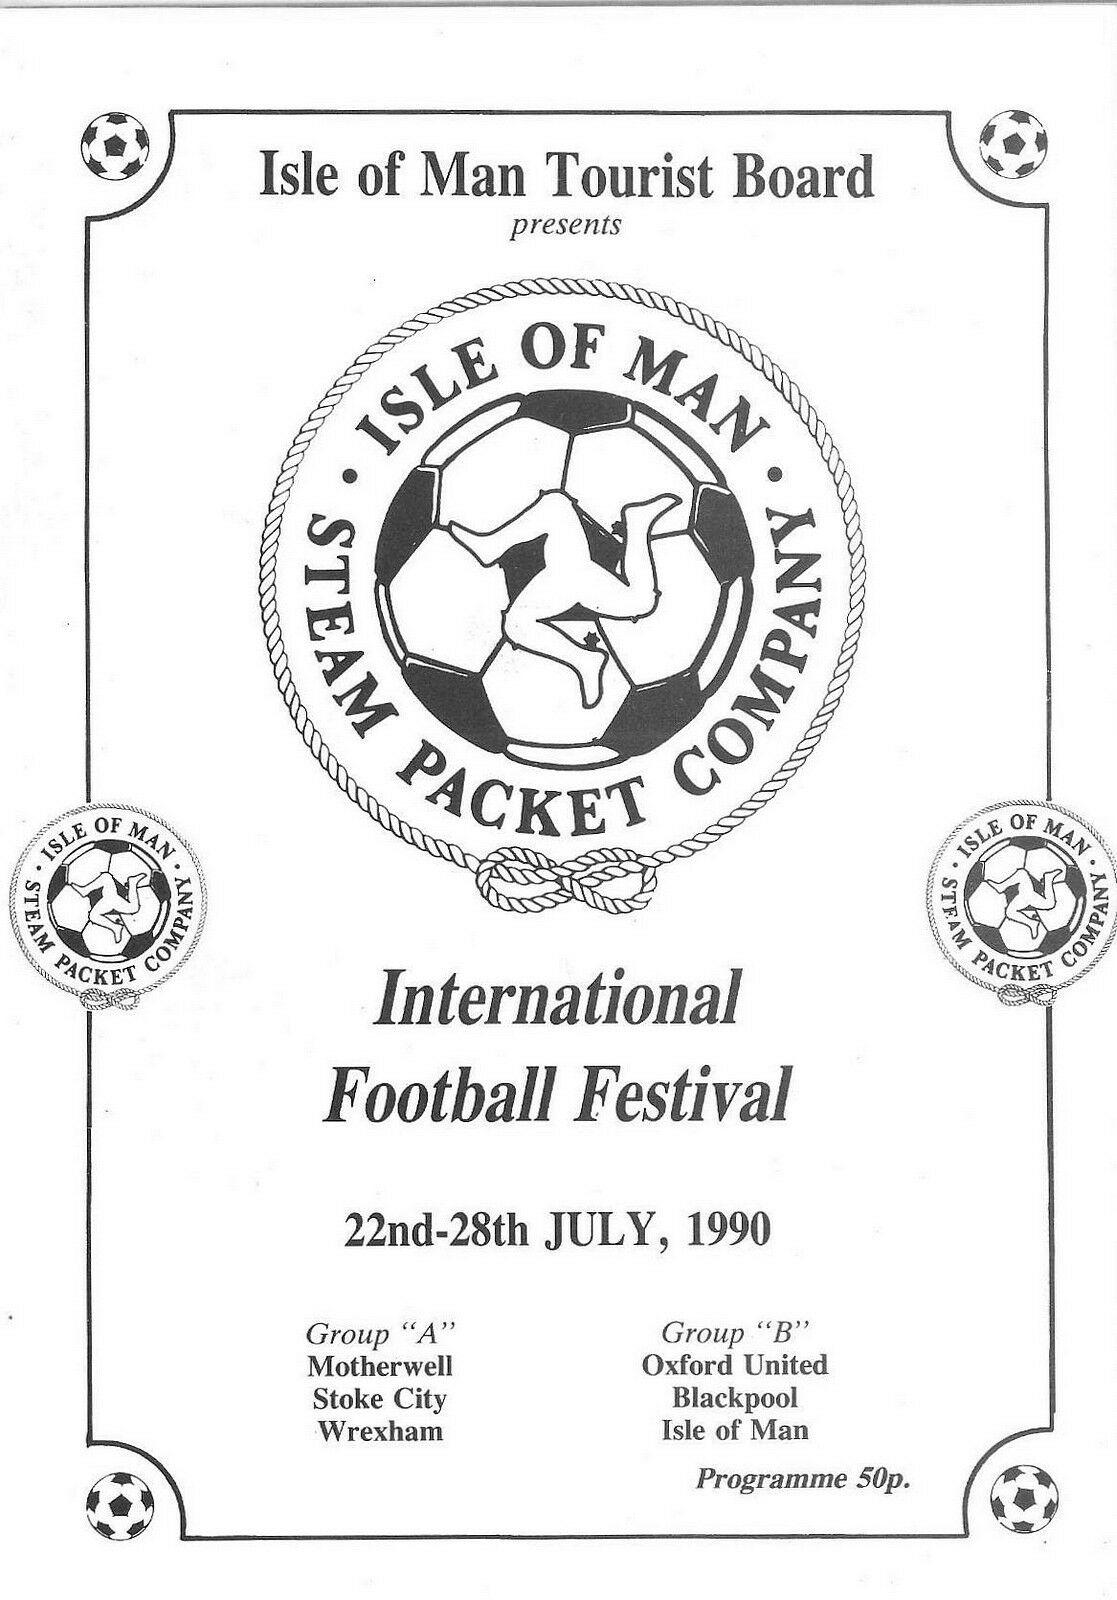 International Football Festival Programme